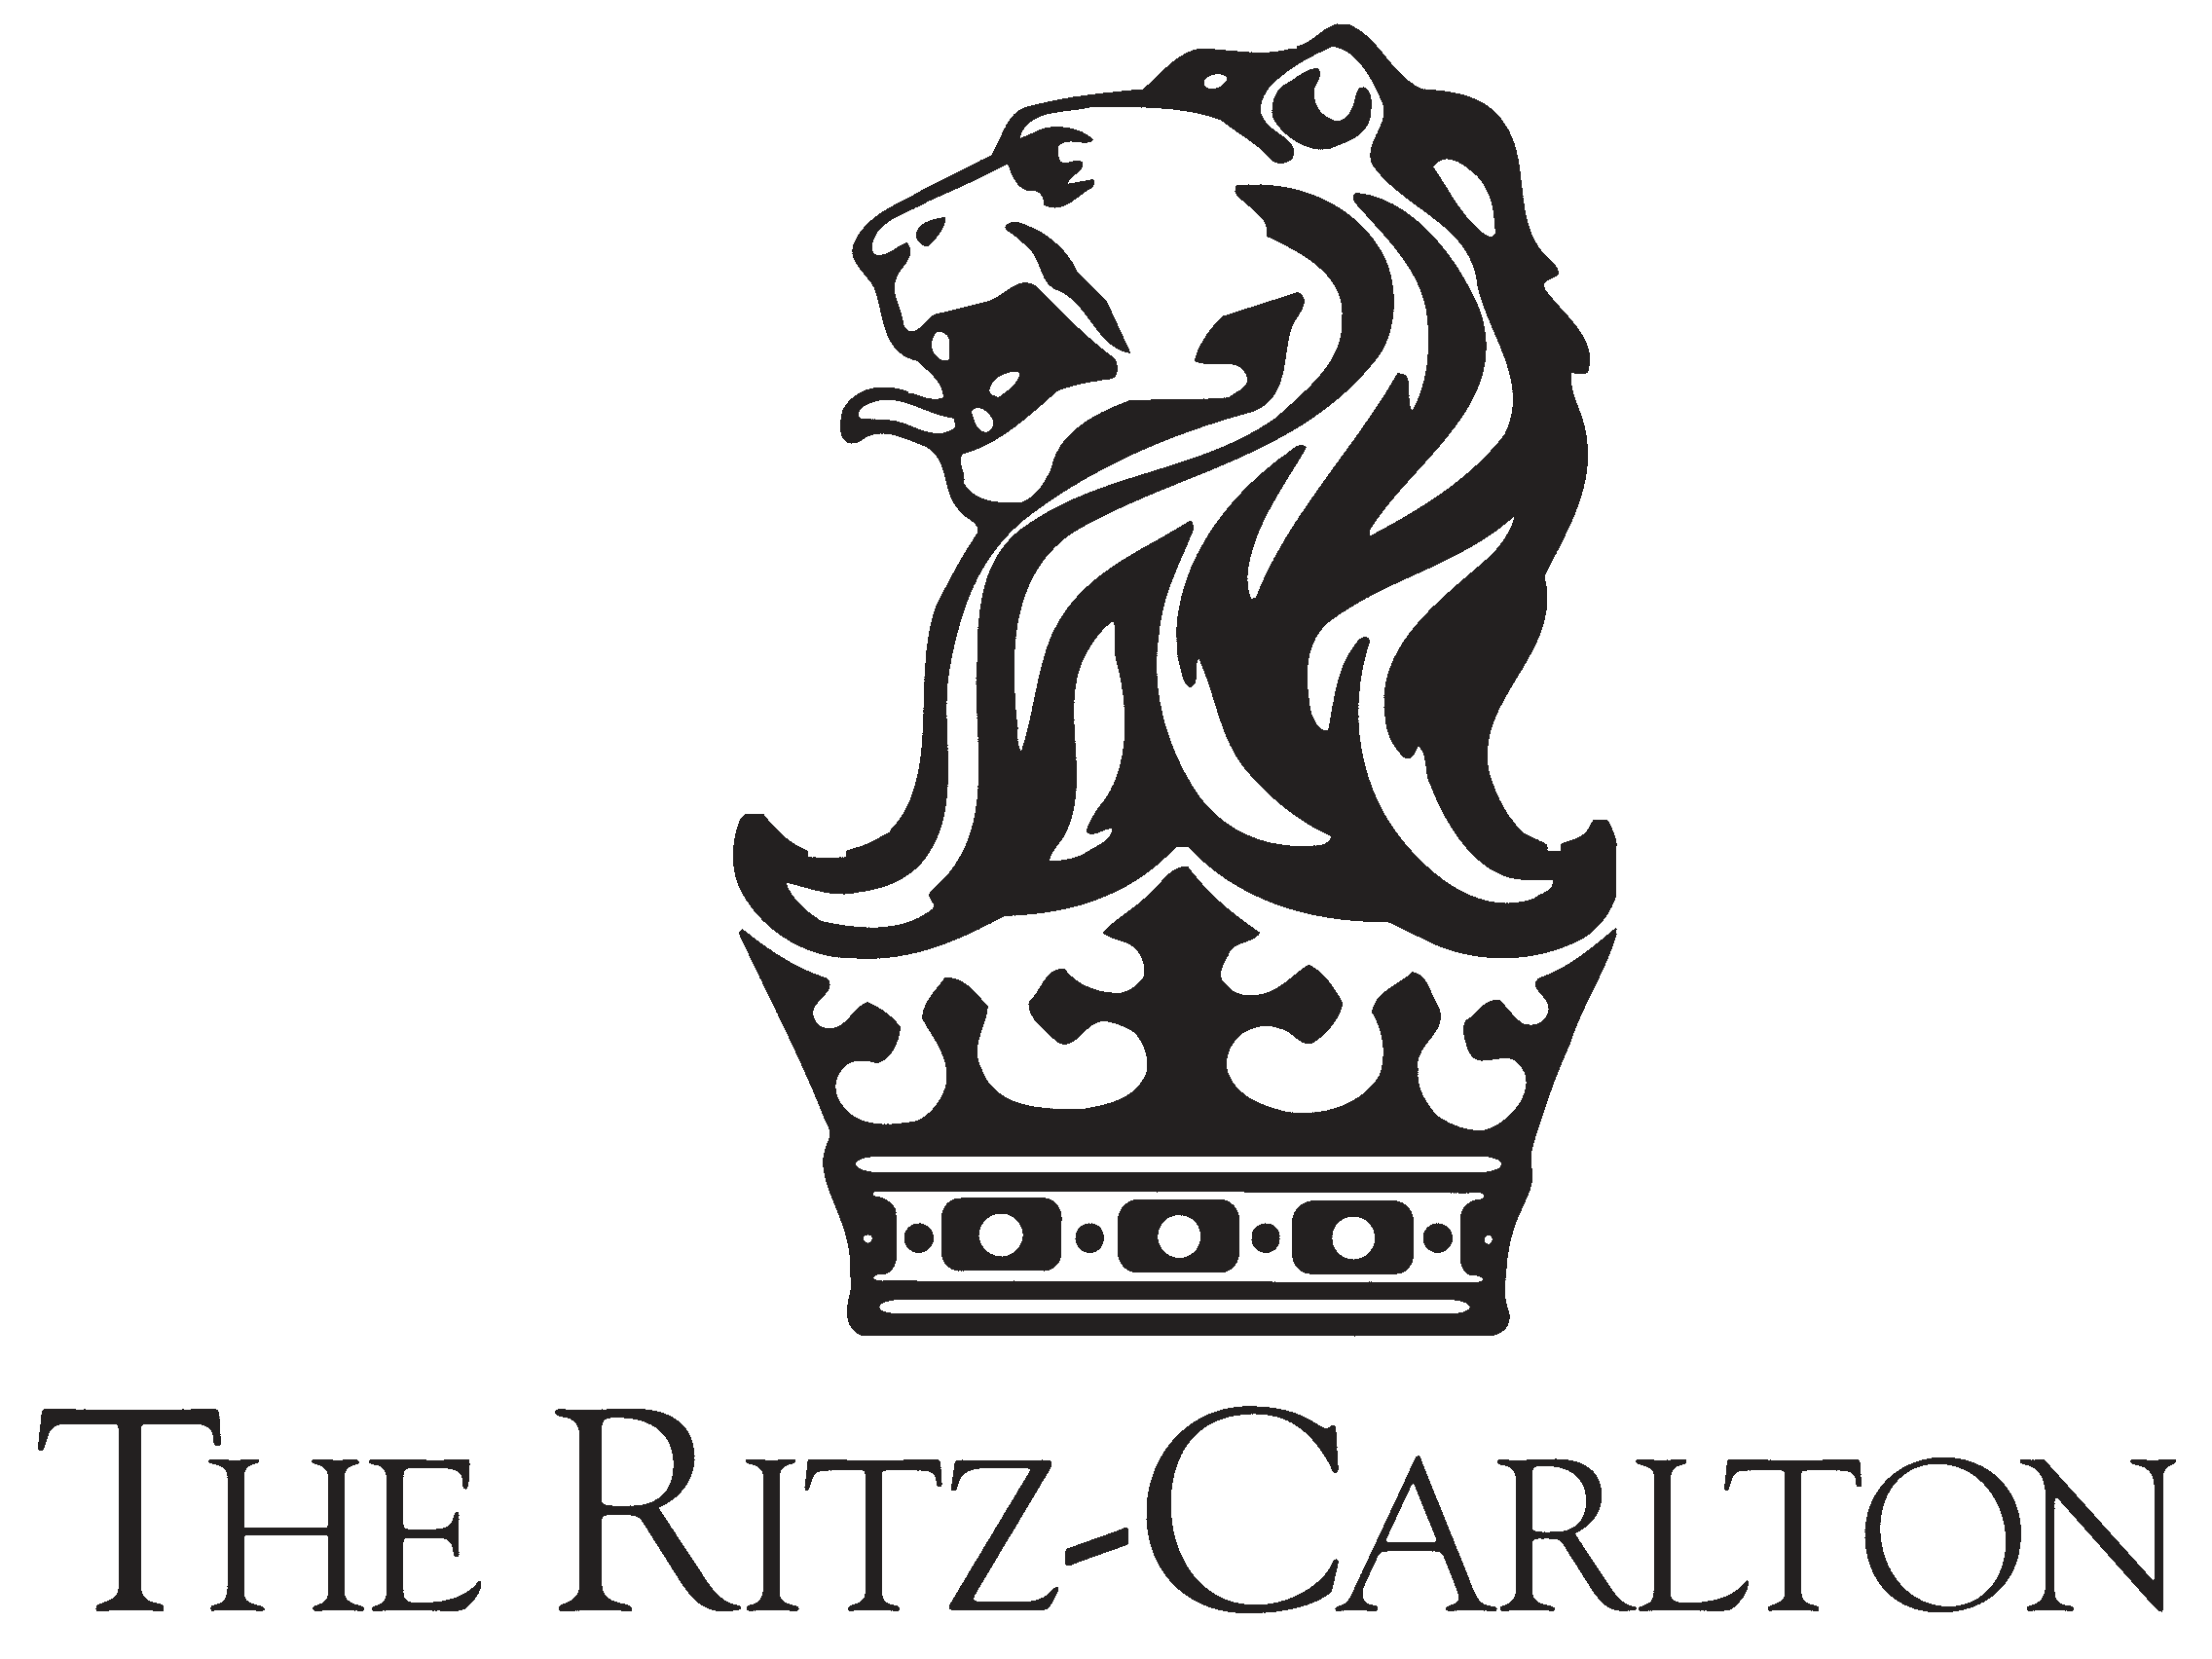 history of the ritz carlton essay The ritz-carlton hotel company, llc is an american company that operates the luxury hotel chain known as the ritz-carlton.